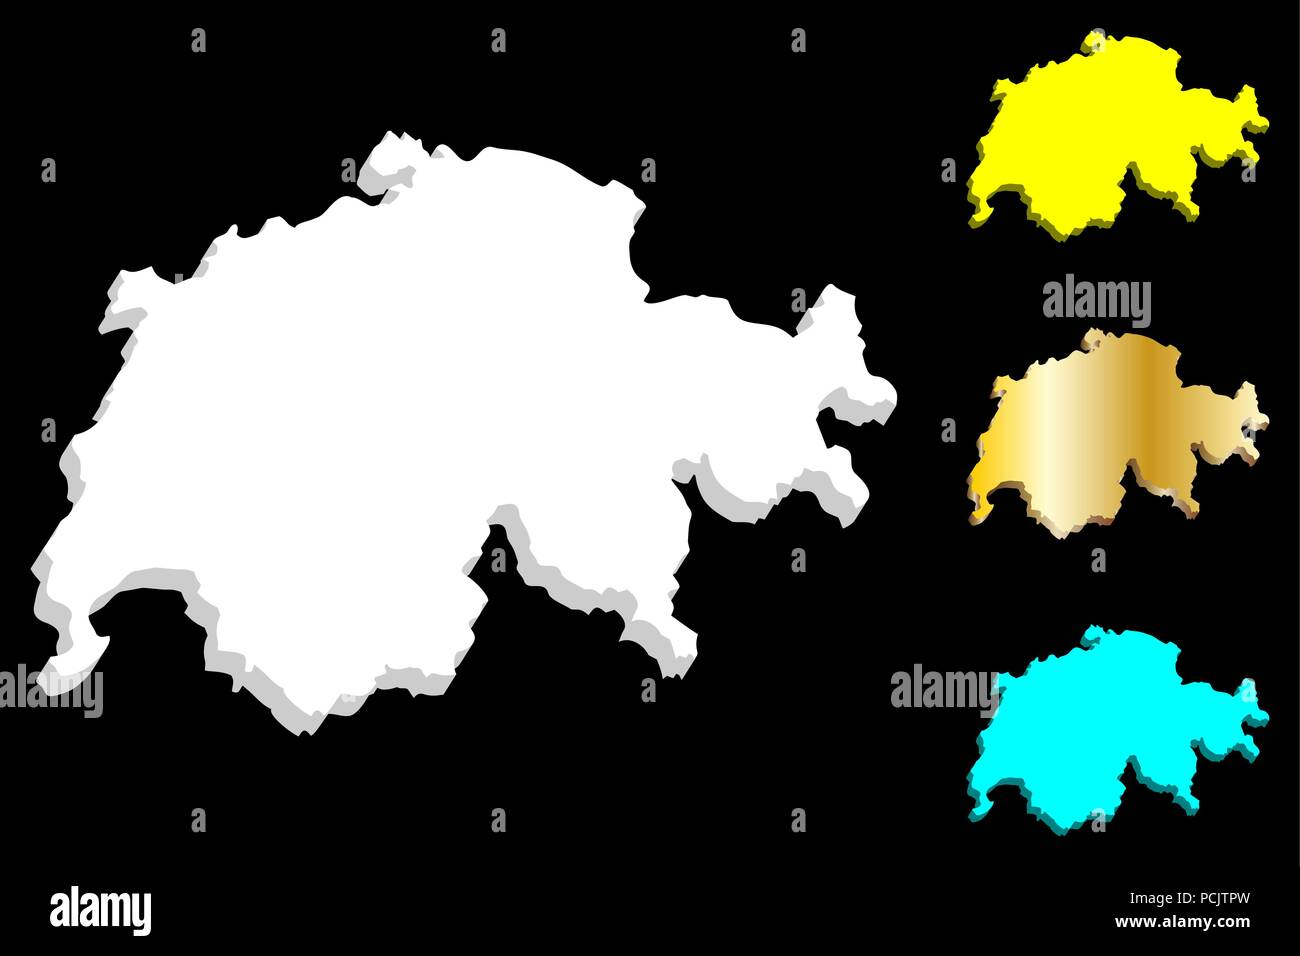 3D map of Switzerland (Swiss Confederation) - white, yellow, blue and gold - vector illustration - Stock Vector